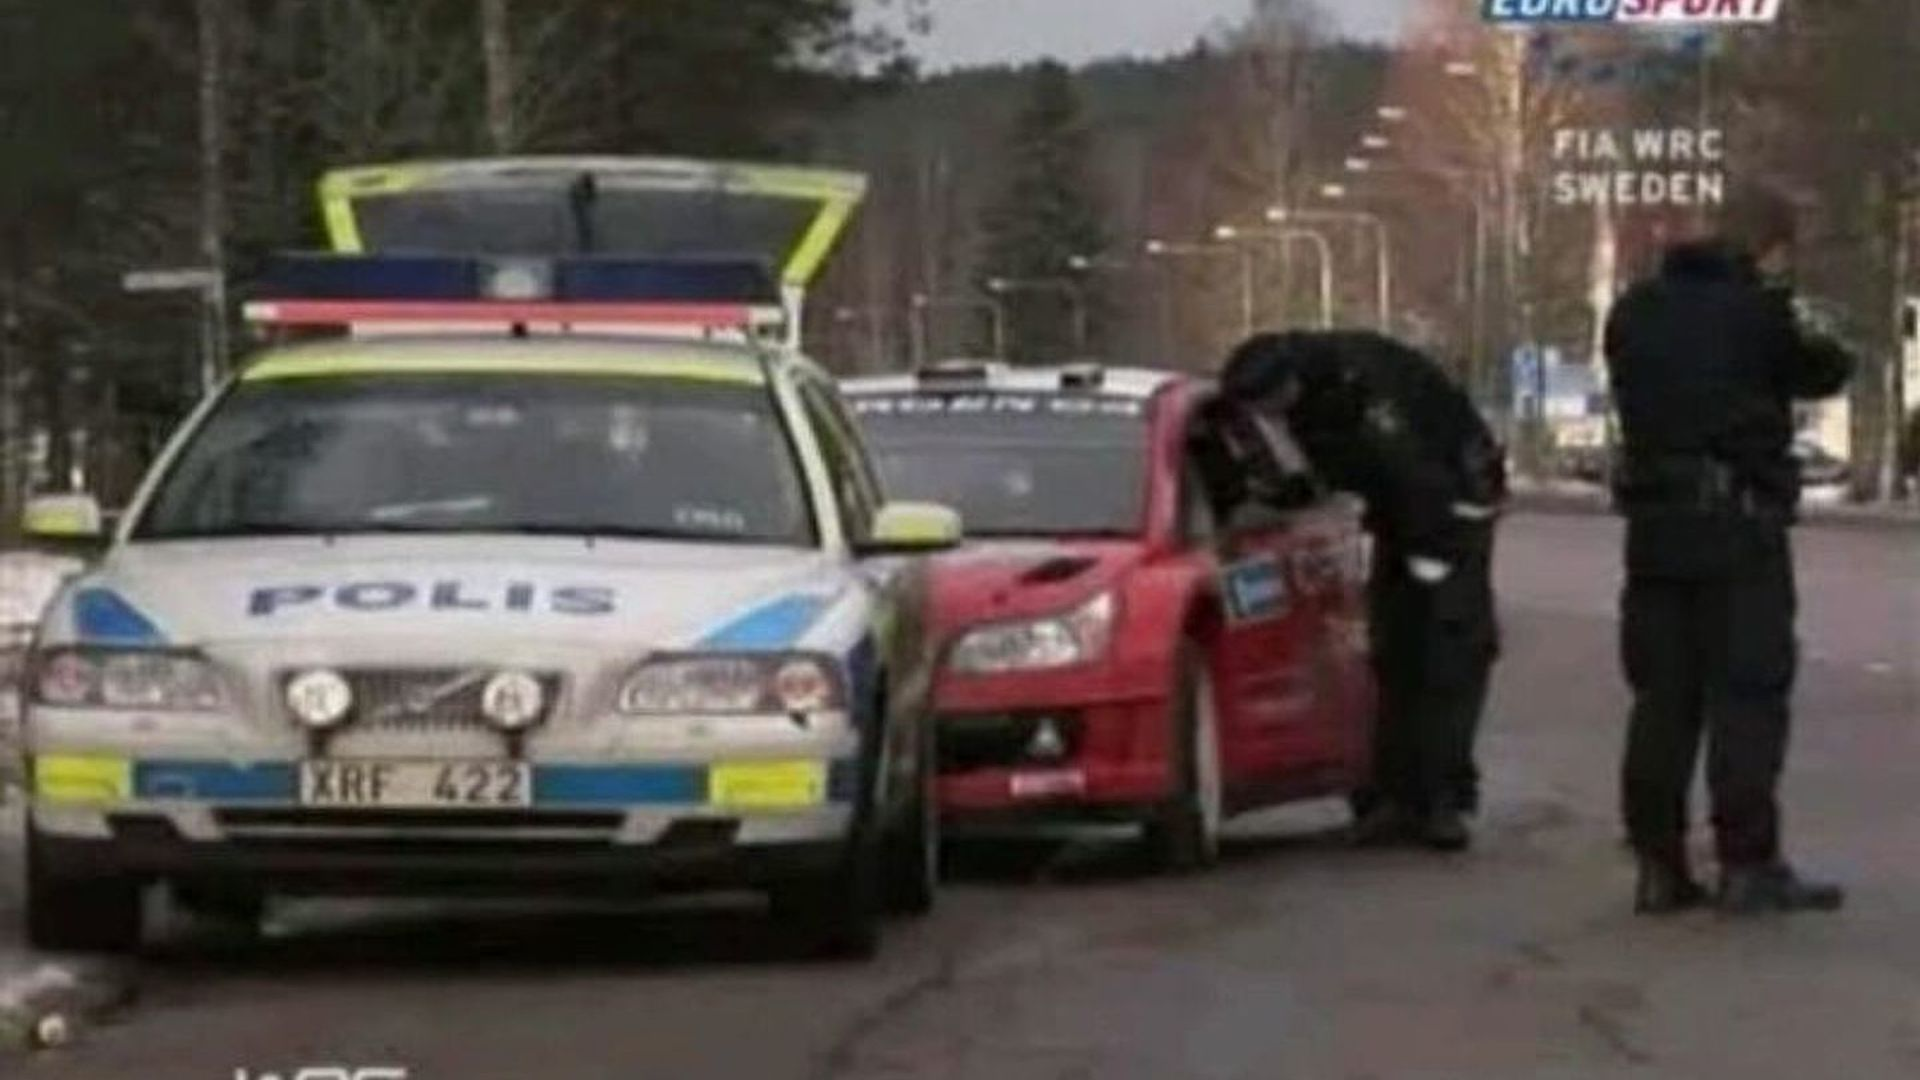 VIDEO: Rally Champ Sebastien Loeb Gets Speeding Ticket at Swedish Rally